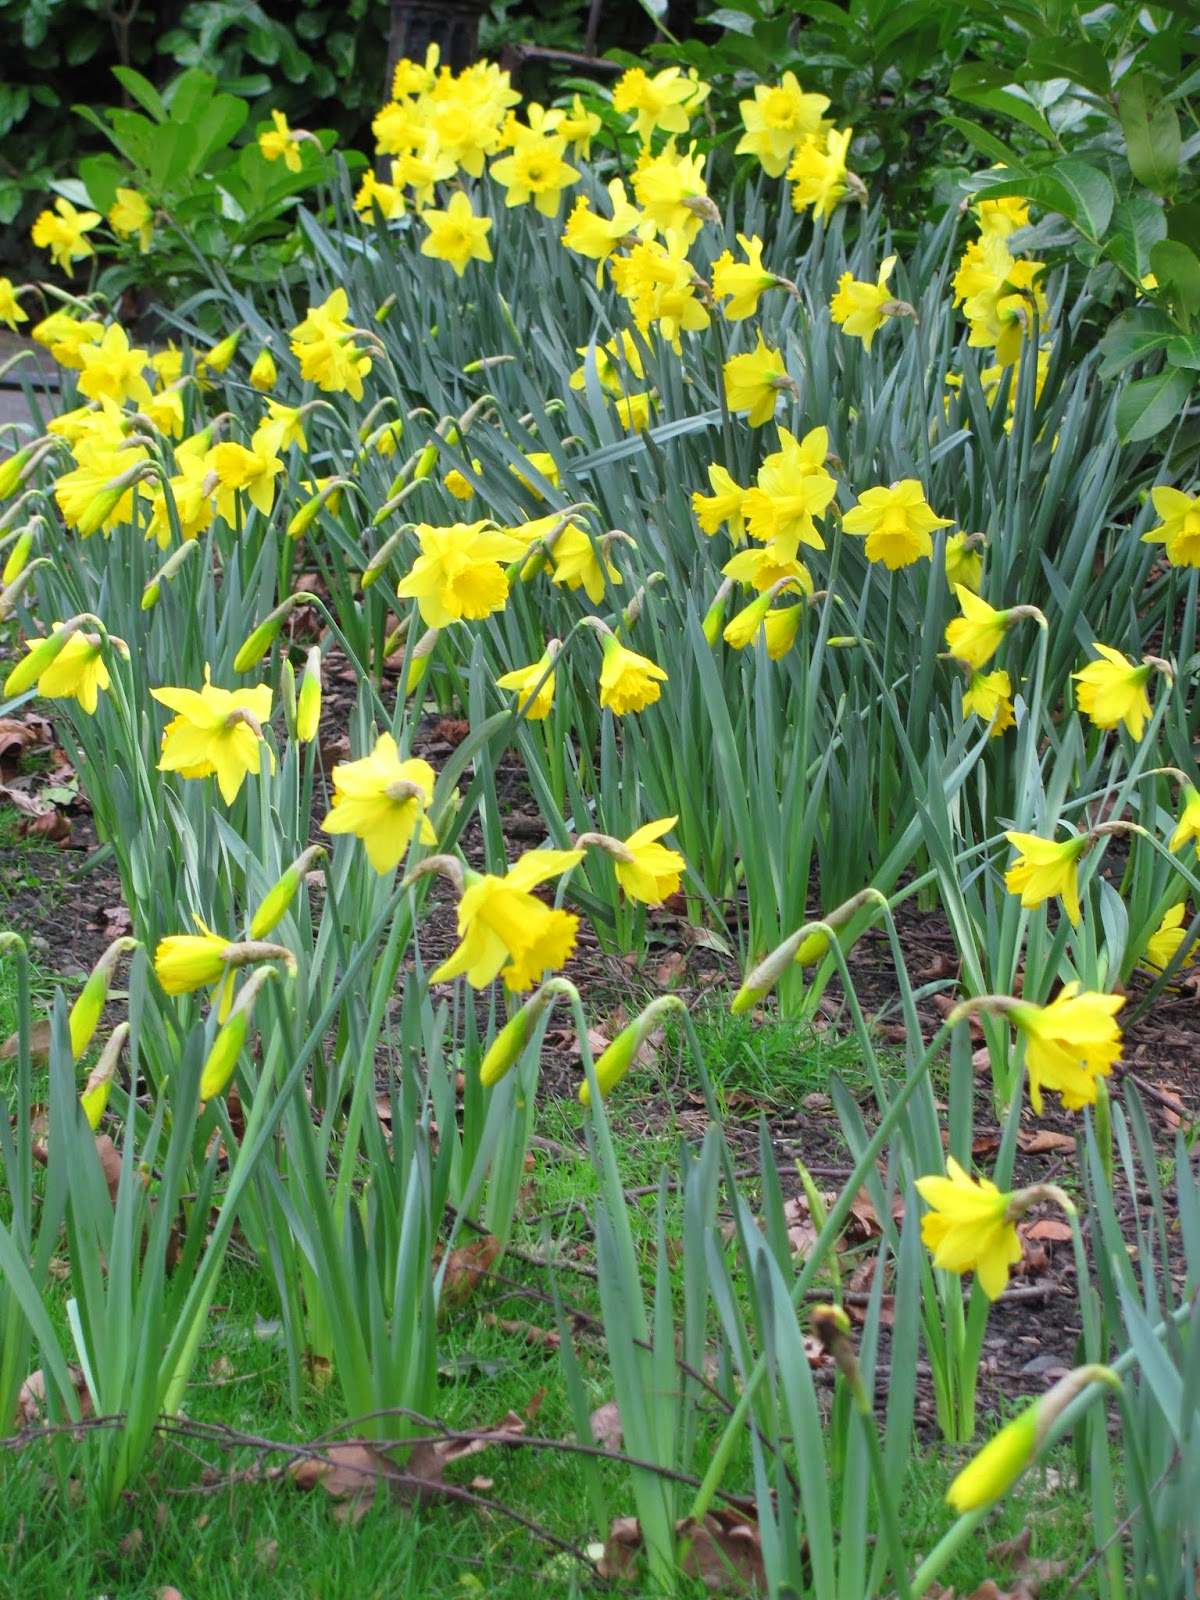 Daffodils at St. Stephens Green Dublin, Ireland